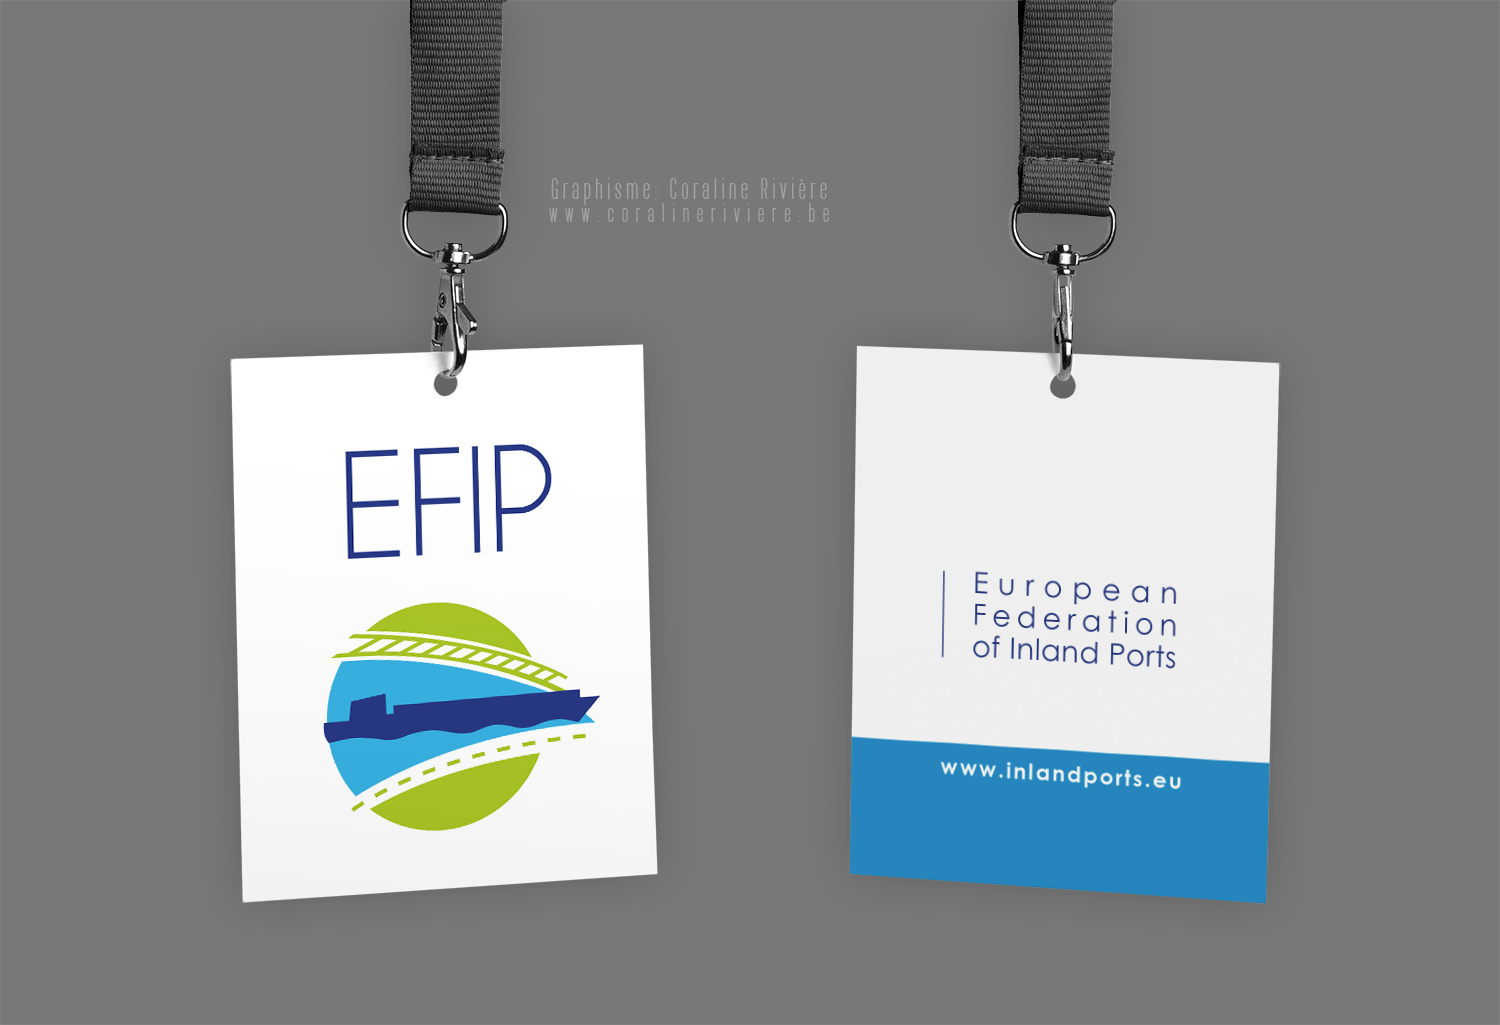 logo transport fluvial route rail efip european federation inland ports